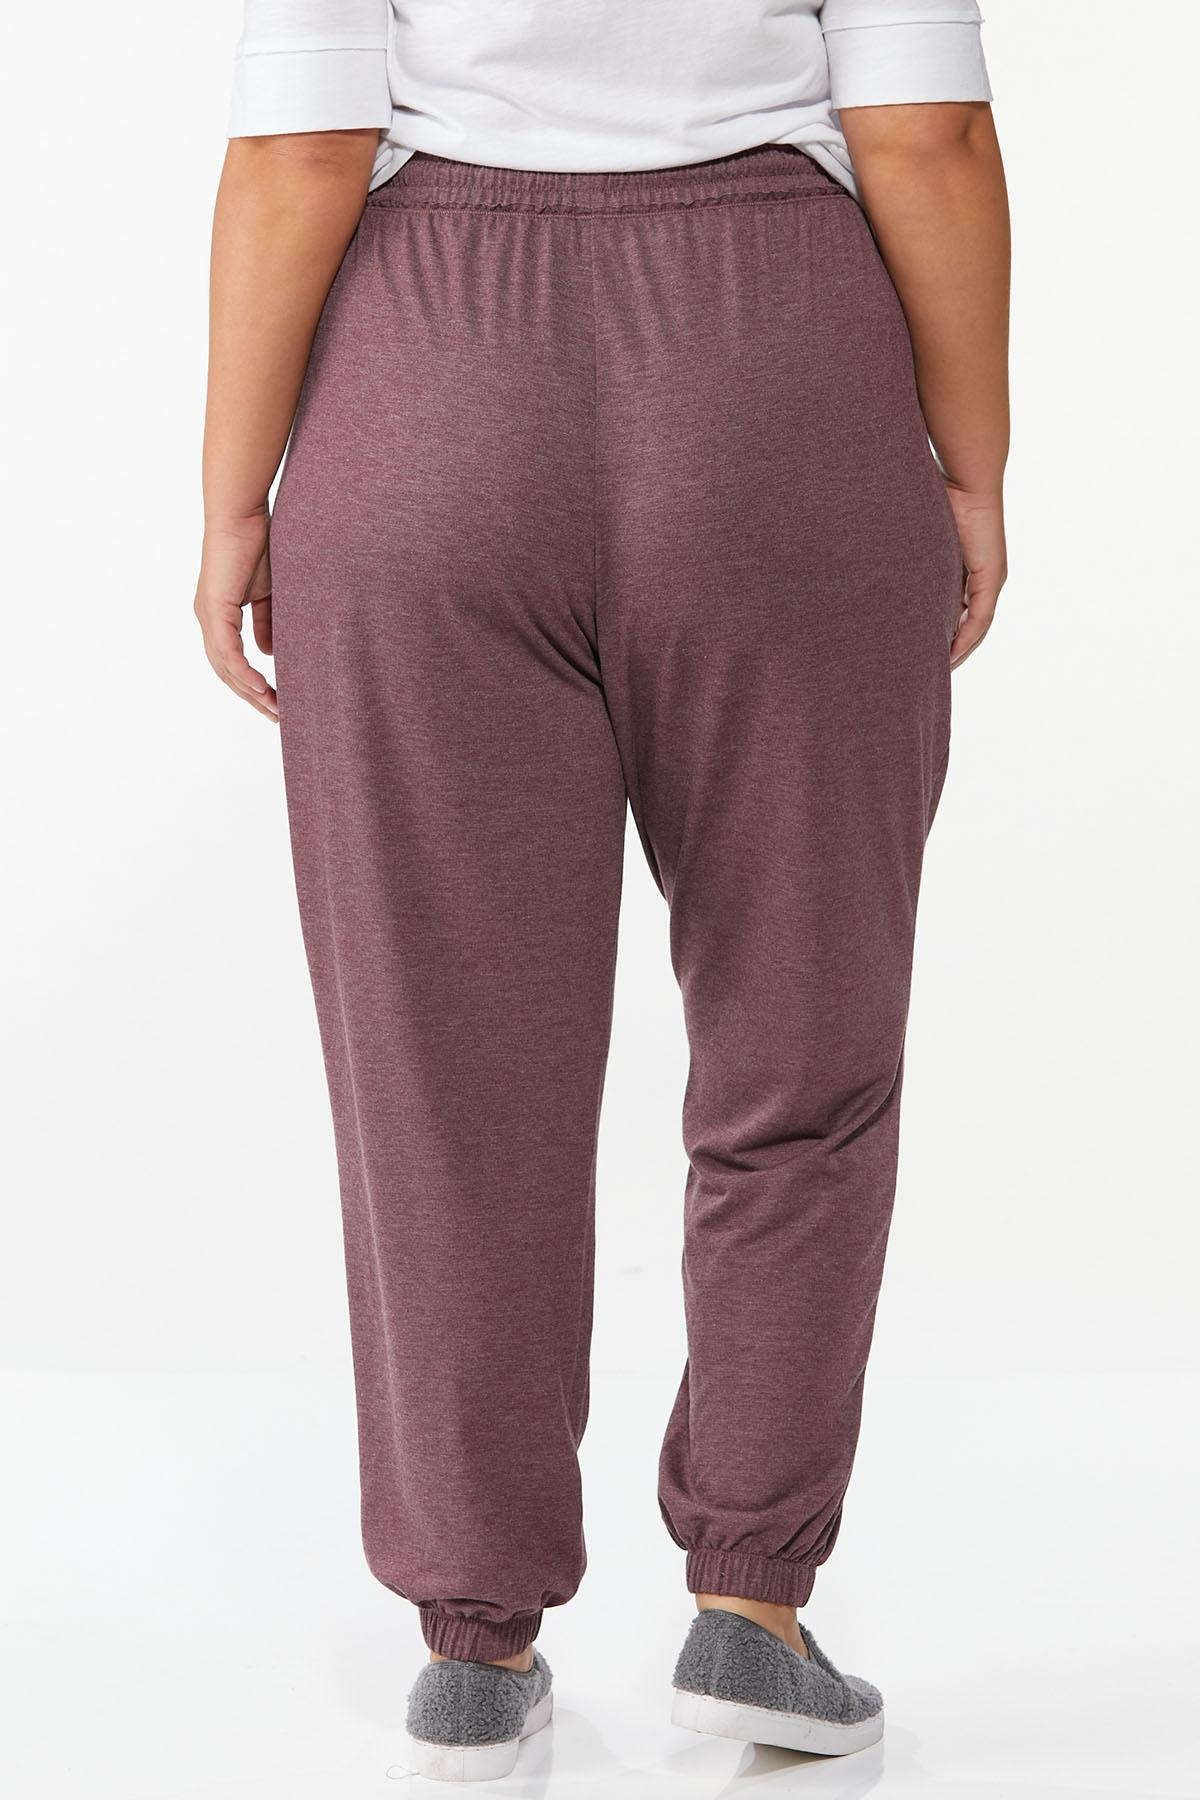 Plus Size Wine French Terry Joggers (Item #44712379)